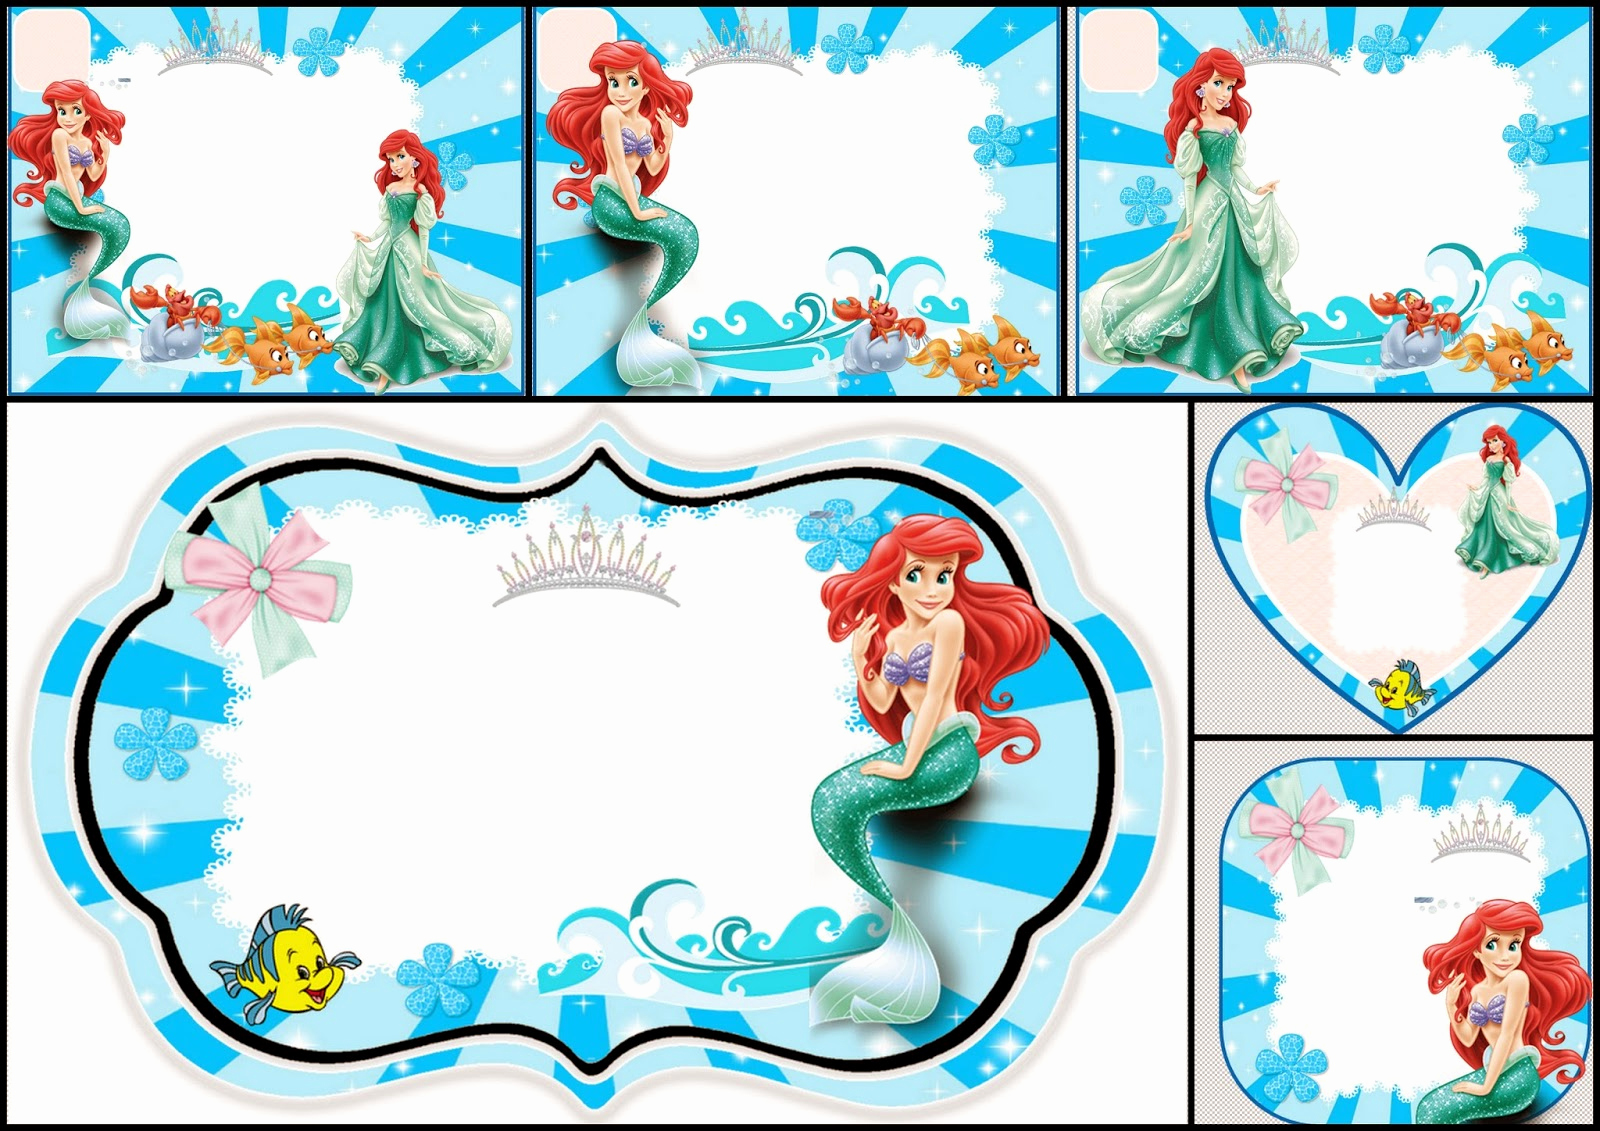 Free Little Mermaid Invitation Templates New the Little Mermaid Free Printable Invitations Cards or